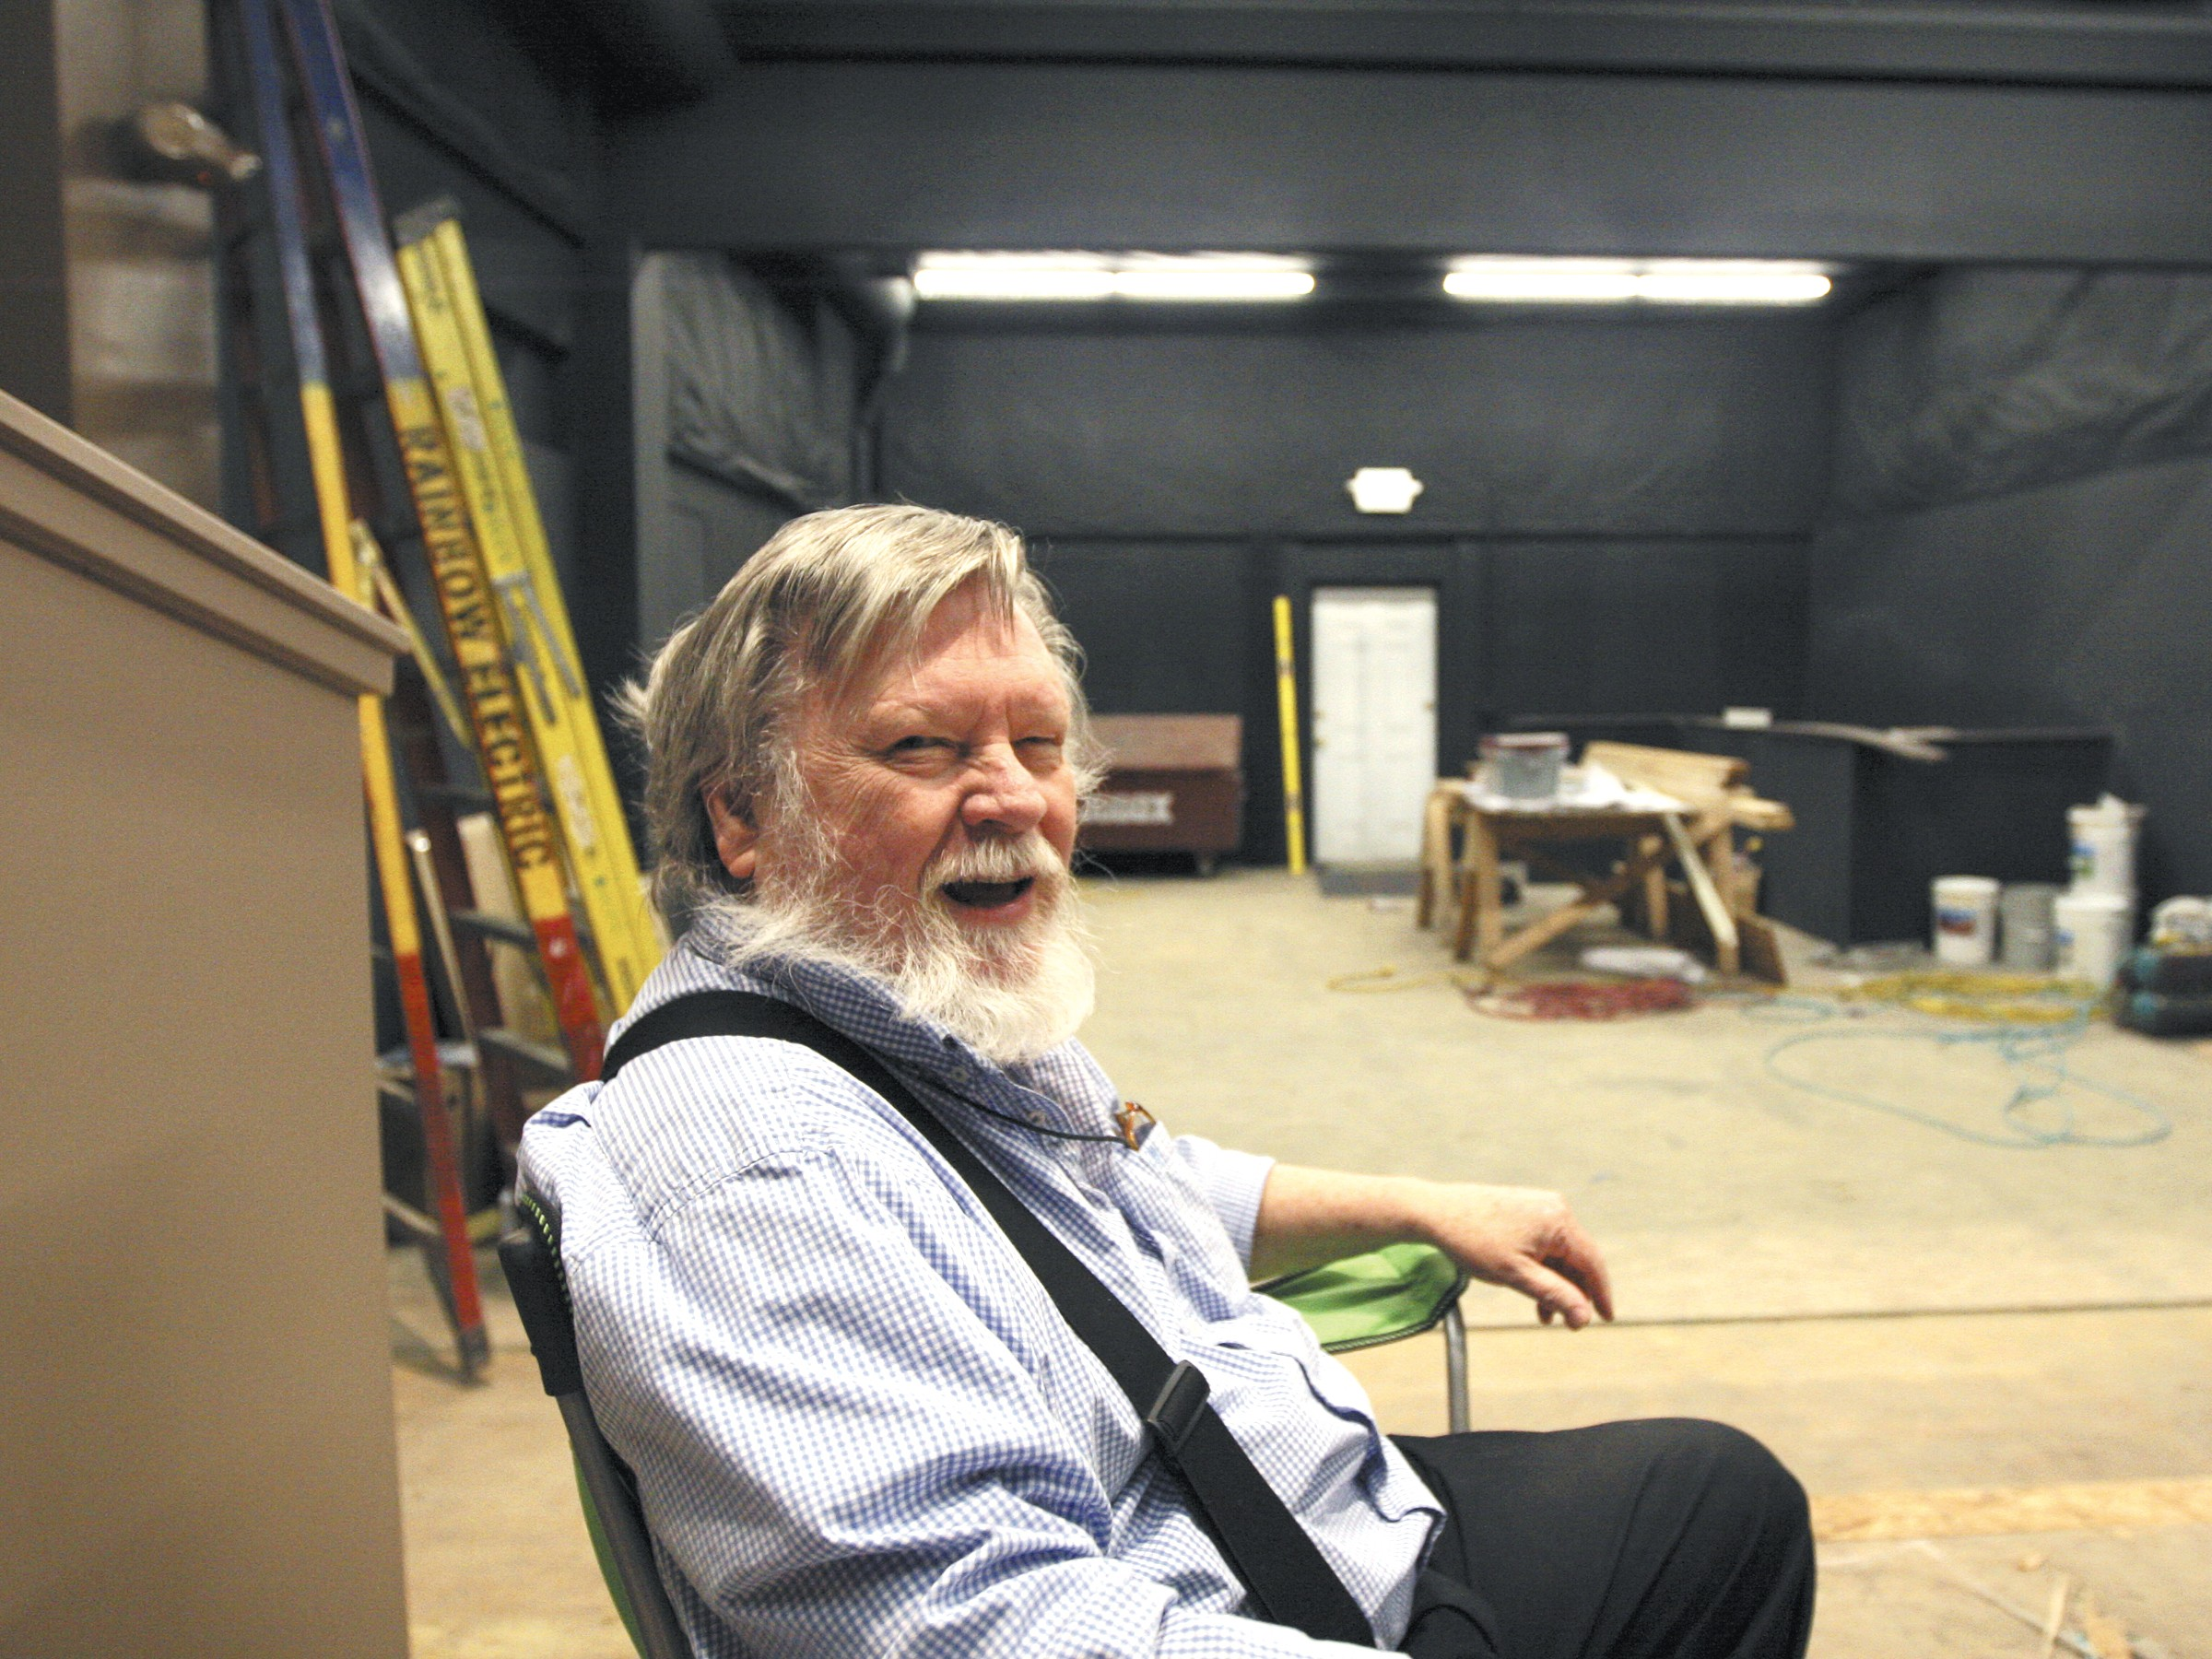 Retired physicist Bob Nelson wants to bring an edgier brand of comedy to Spokane. - MARSHALL E. PETERSON JR.